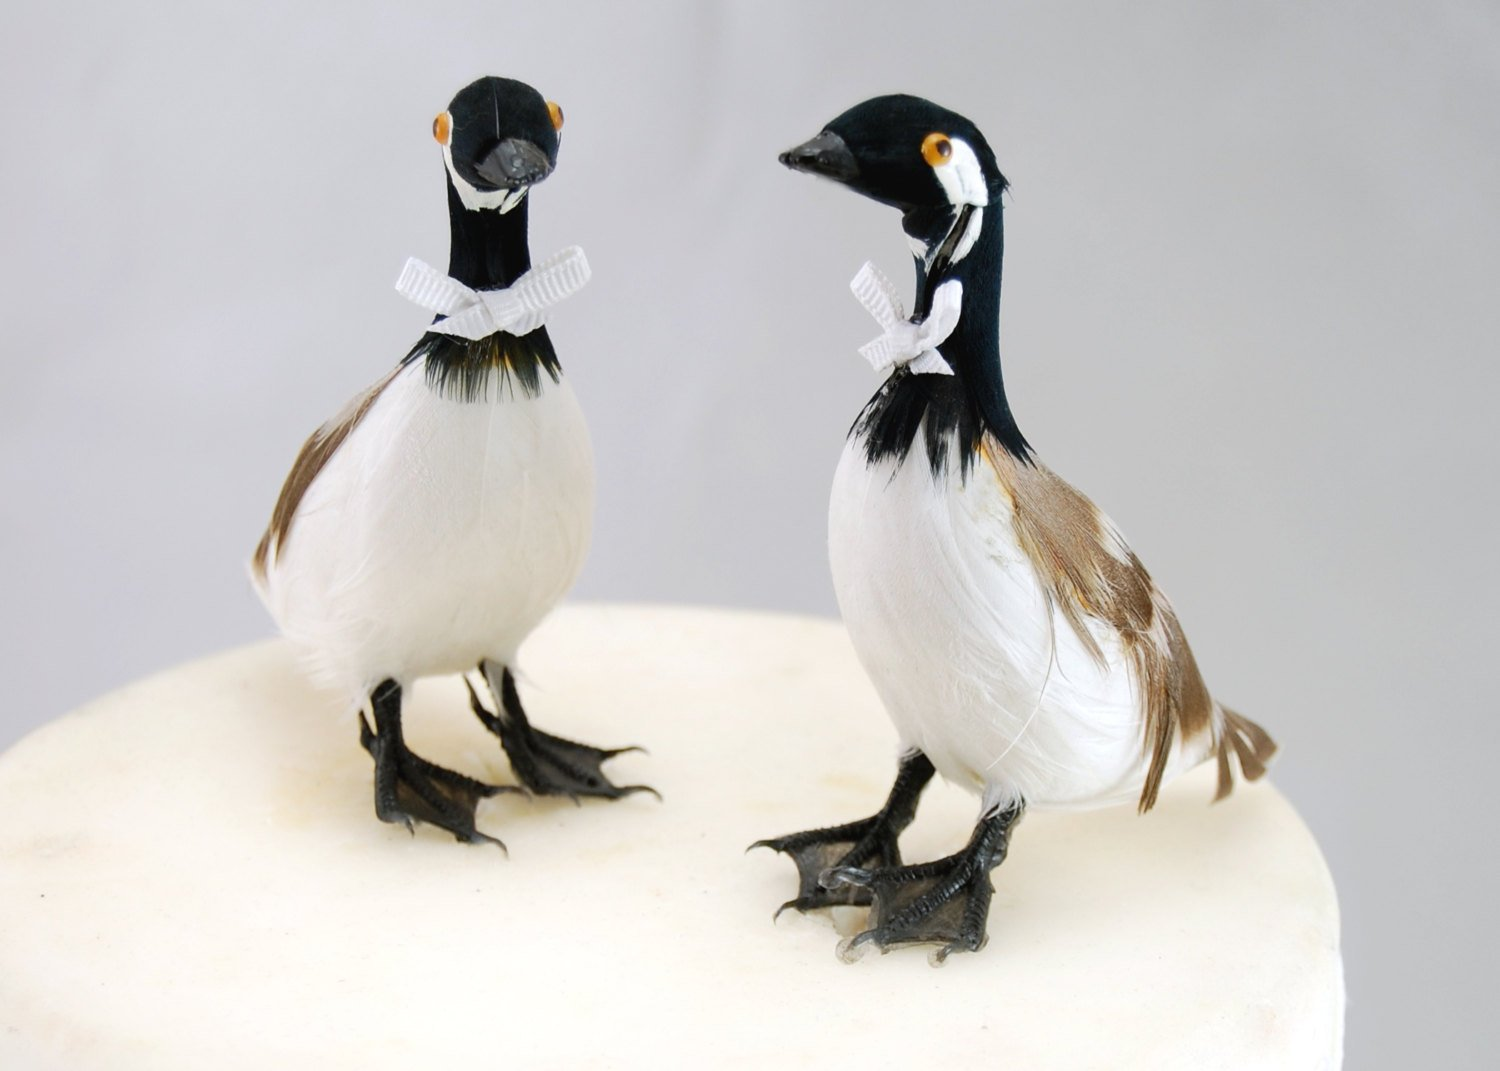 Amazoncom Canada Goose Cake Topper Bride and Groom Love Birds